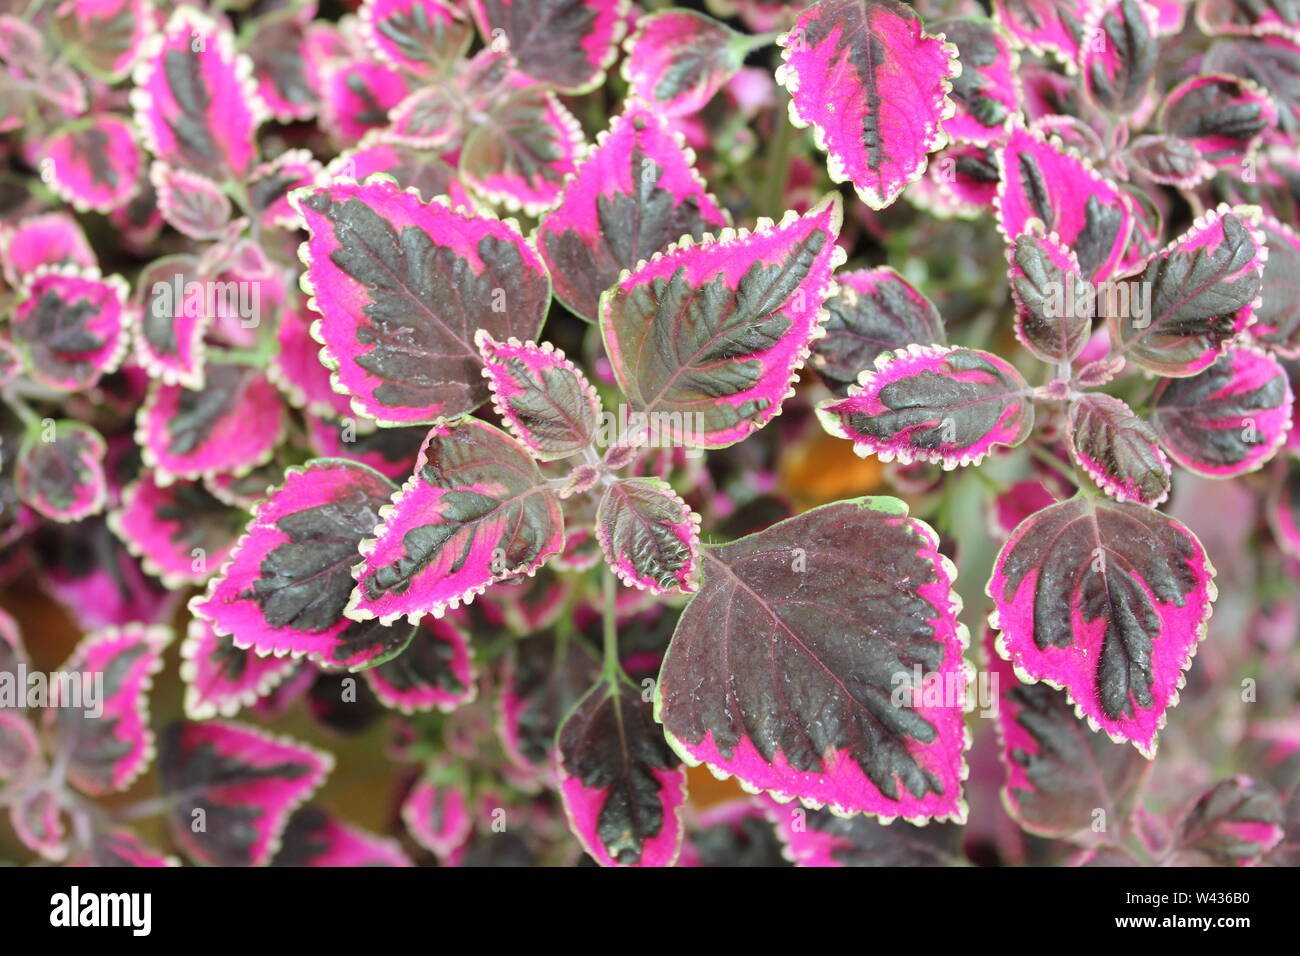 Brightly colored, coleus, Plectranthus scutellarioides, painted nettle. Stock Photo